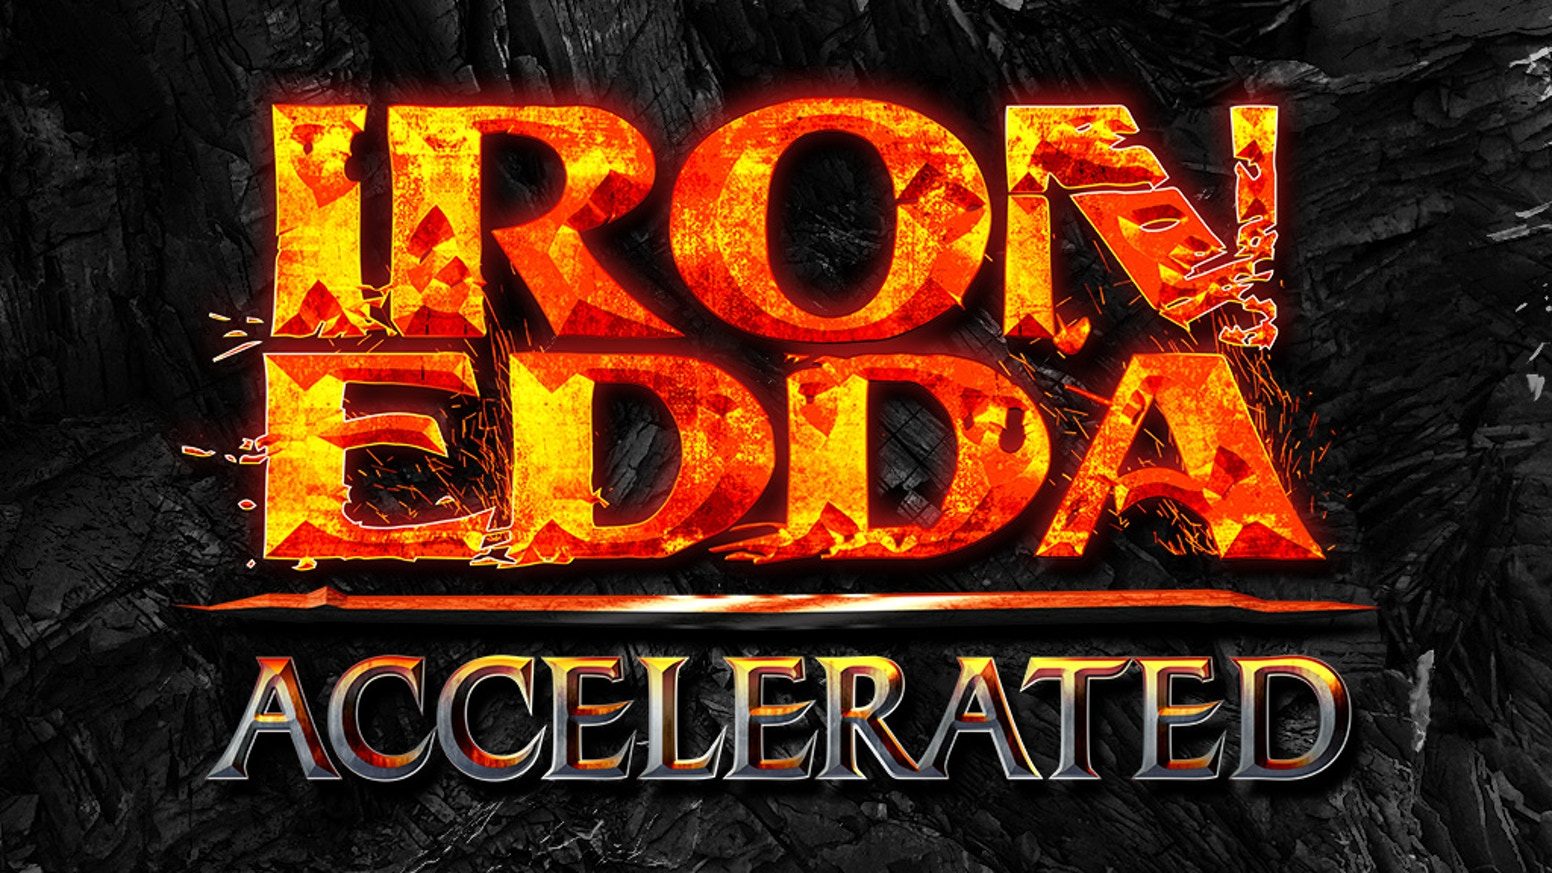 A new version of the Iron Edda RPG, powered by Fate Accelerated™.